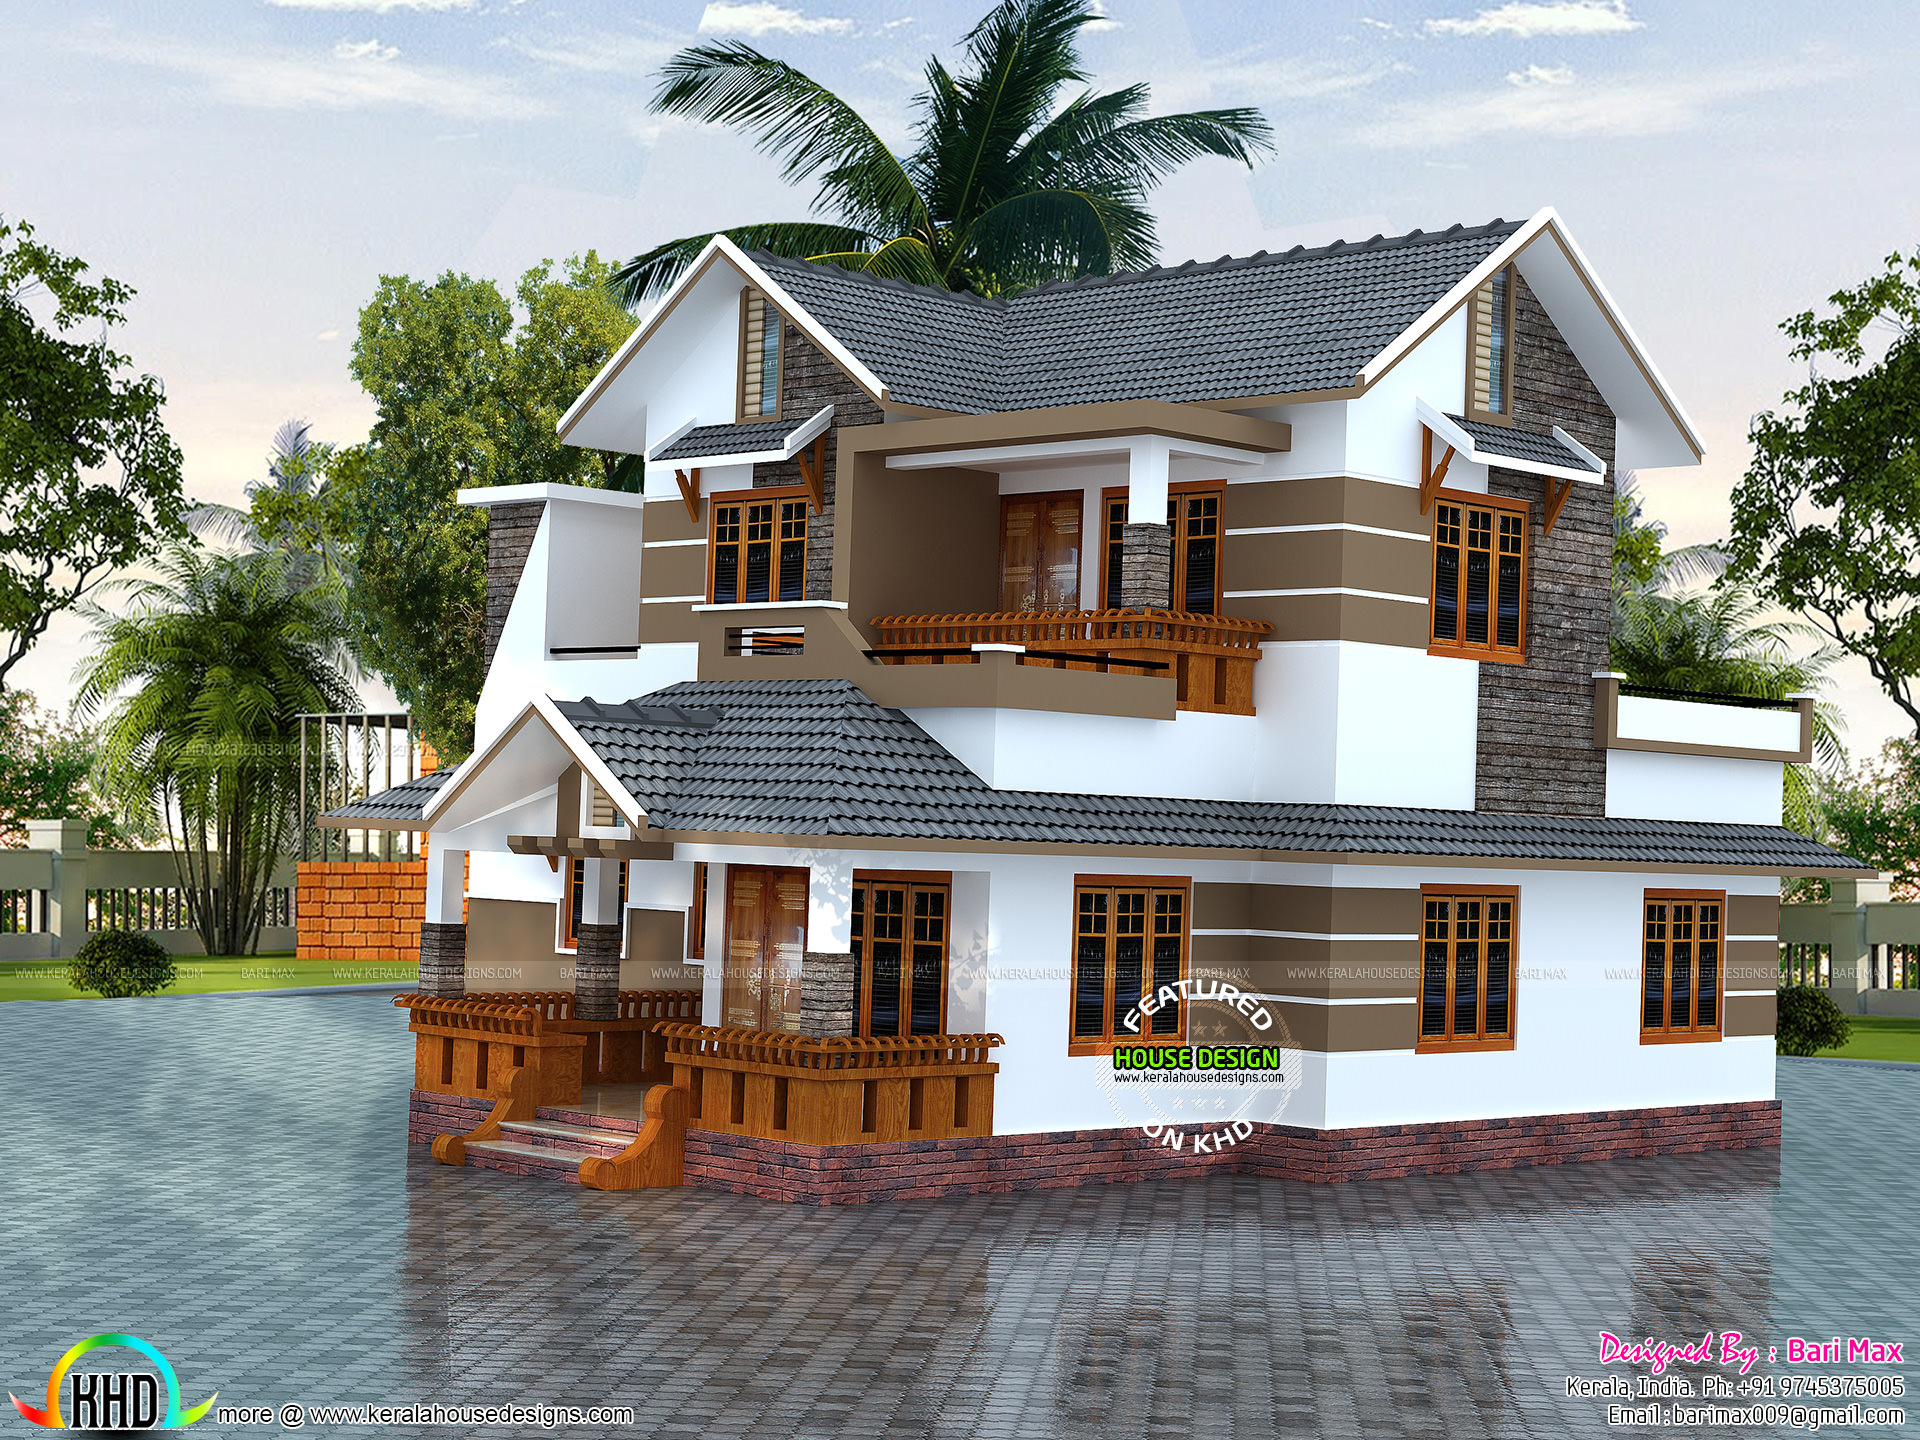 Low budget slop roof style home kerala home design and for Budget home designs in kerala